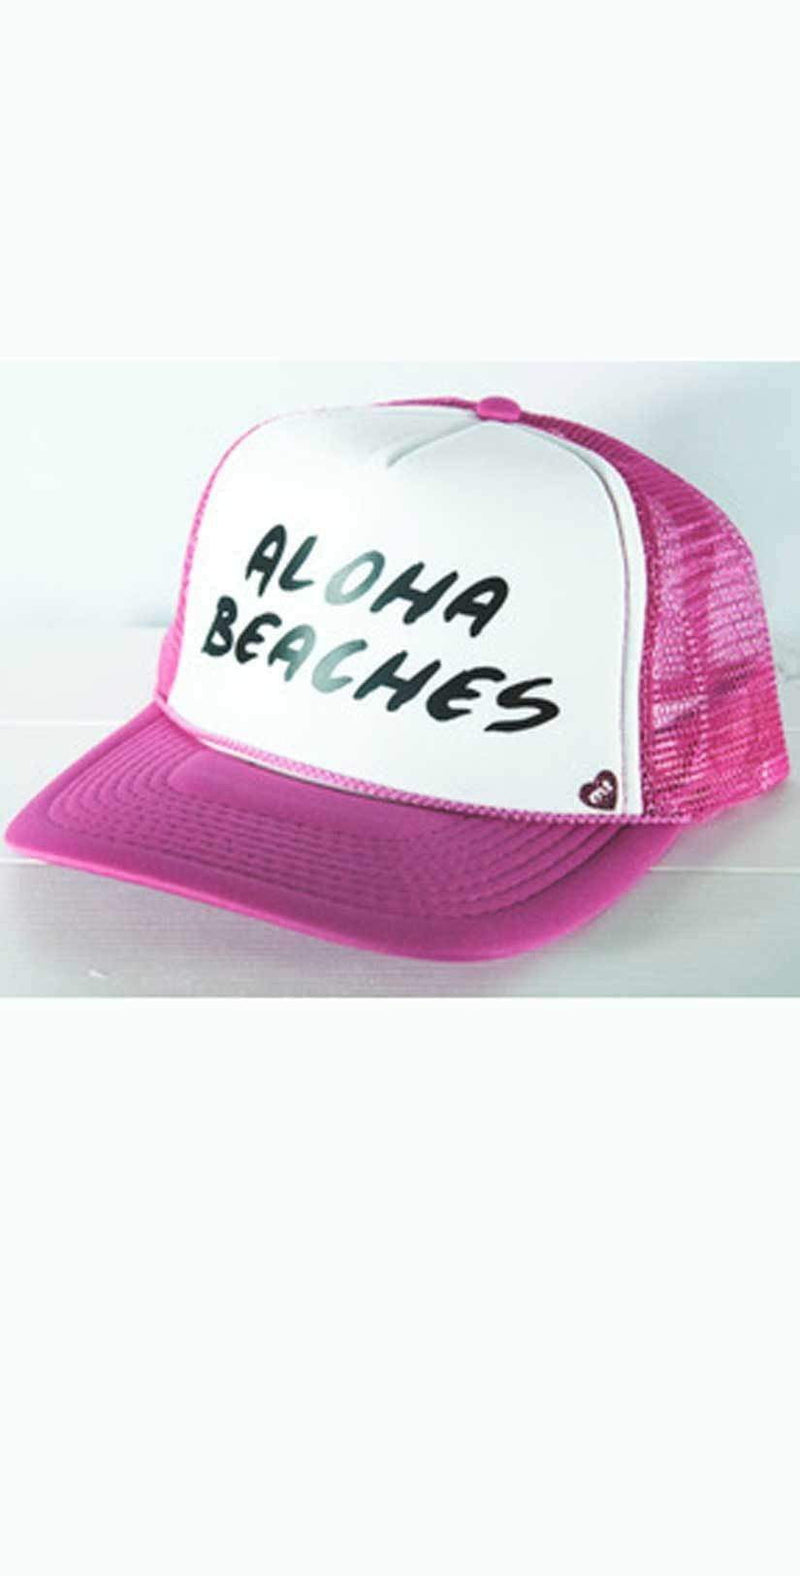 Mother Trucker Aloha Beaches Hat In Pink: